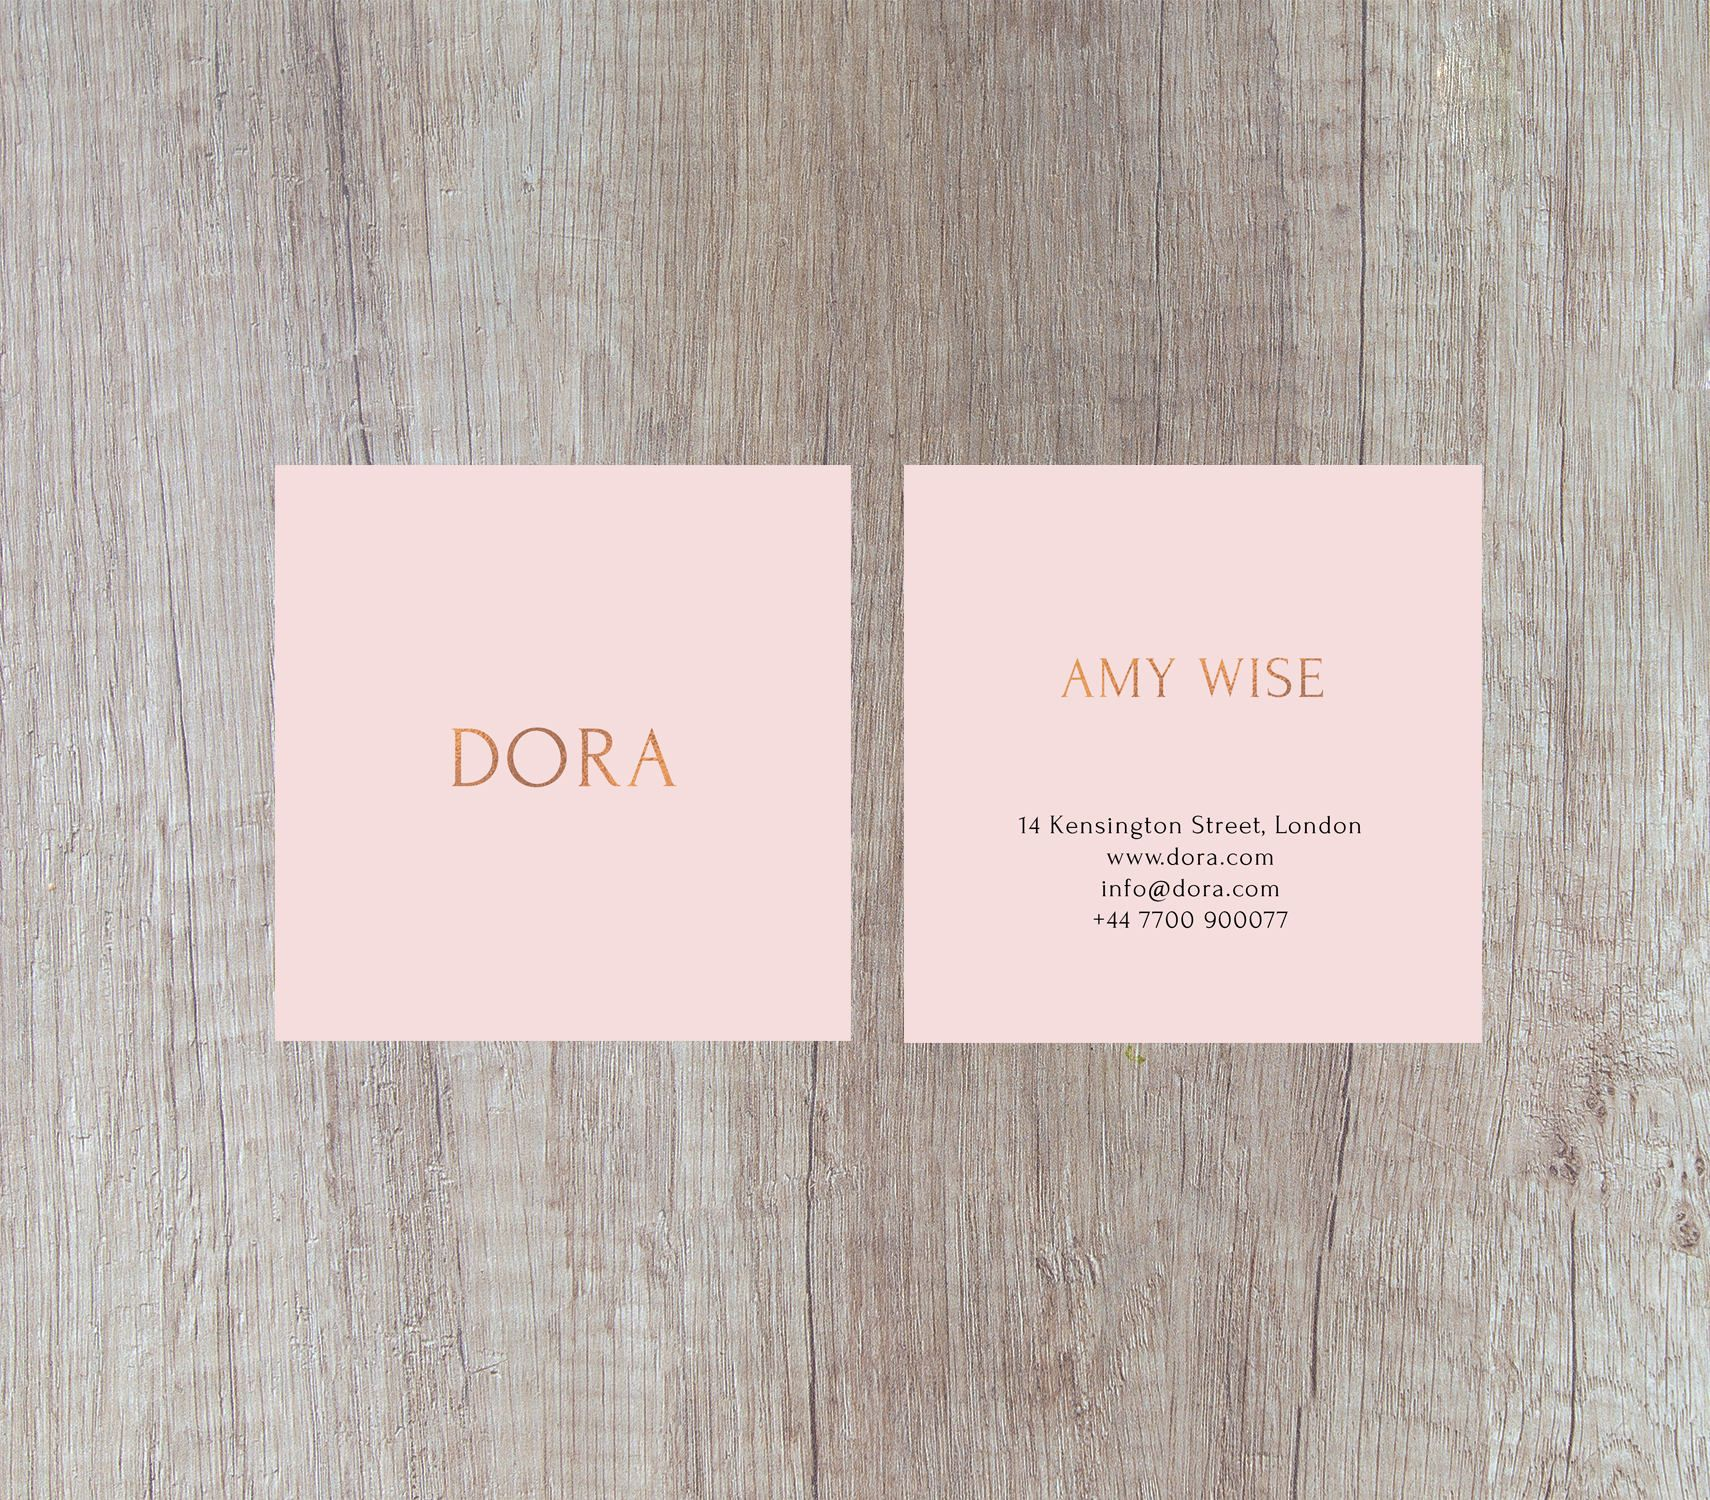 Square business cards calling cards square gold foil design pink dora a square business card design portraying luxury class and femininity featuring light reheart Gallery